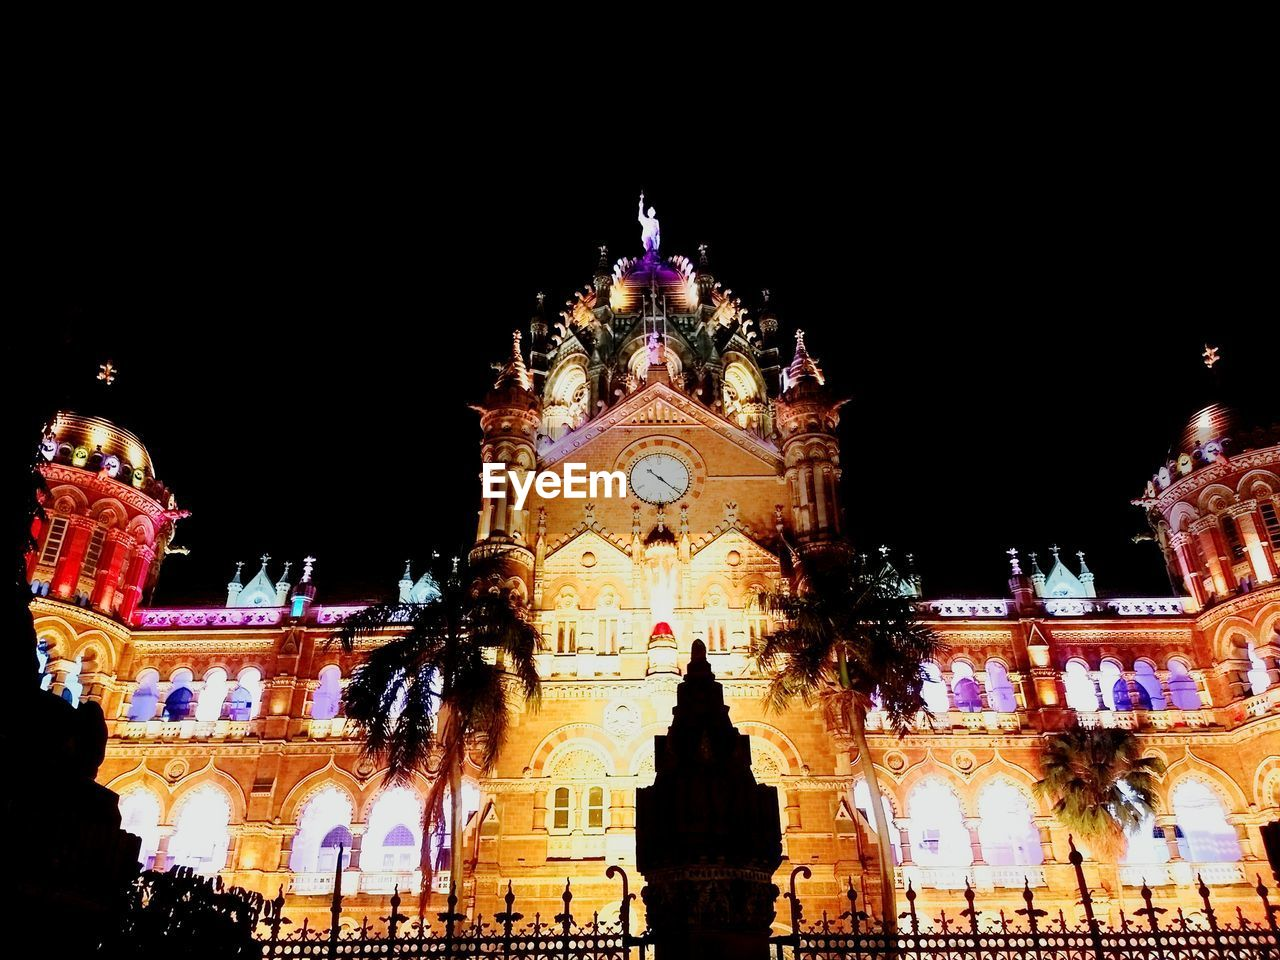 night, illuminated, architecture, building exterior, low angle view, built structure, religion, place of worship, outdoors, spirituality, travel destinations, arts culture and entertainment, sculpture, no people, clear sky, statue, sky, carousel